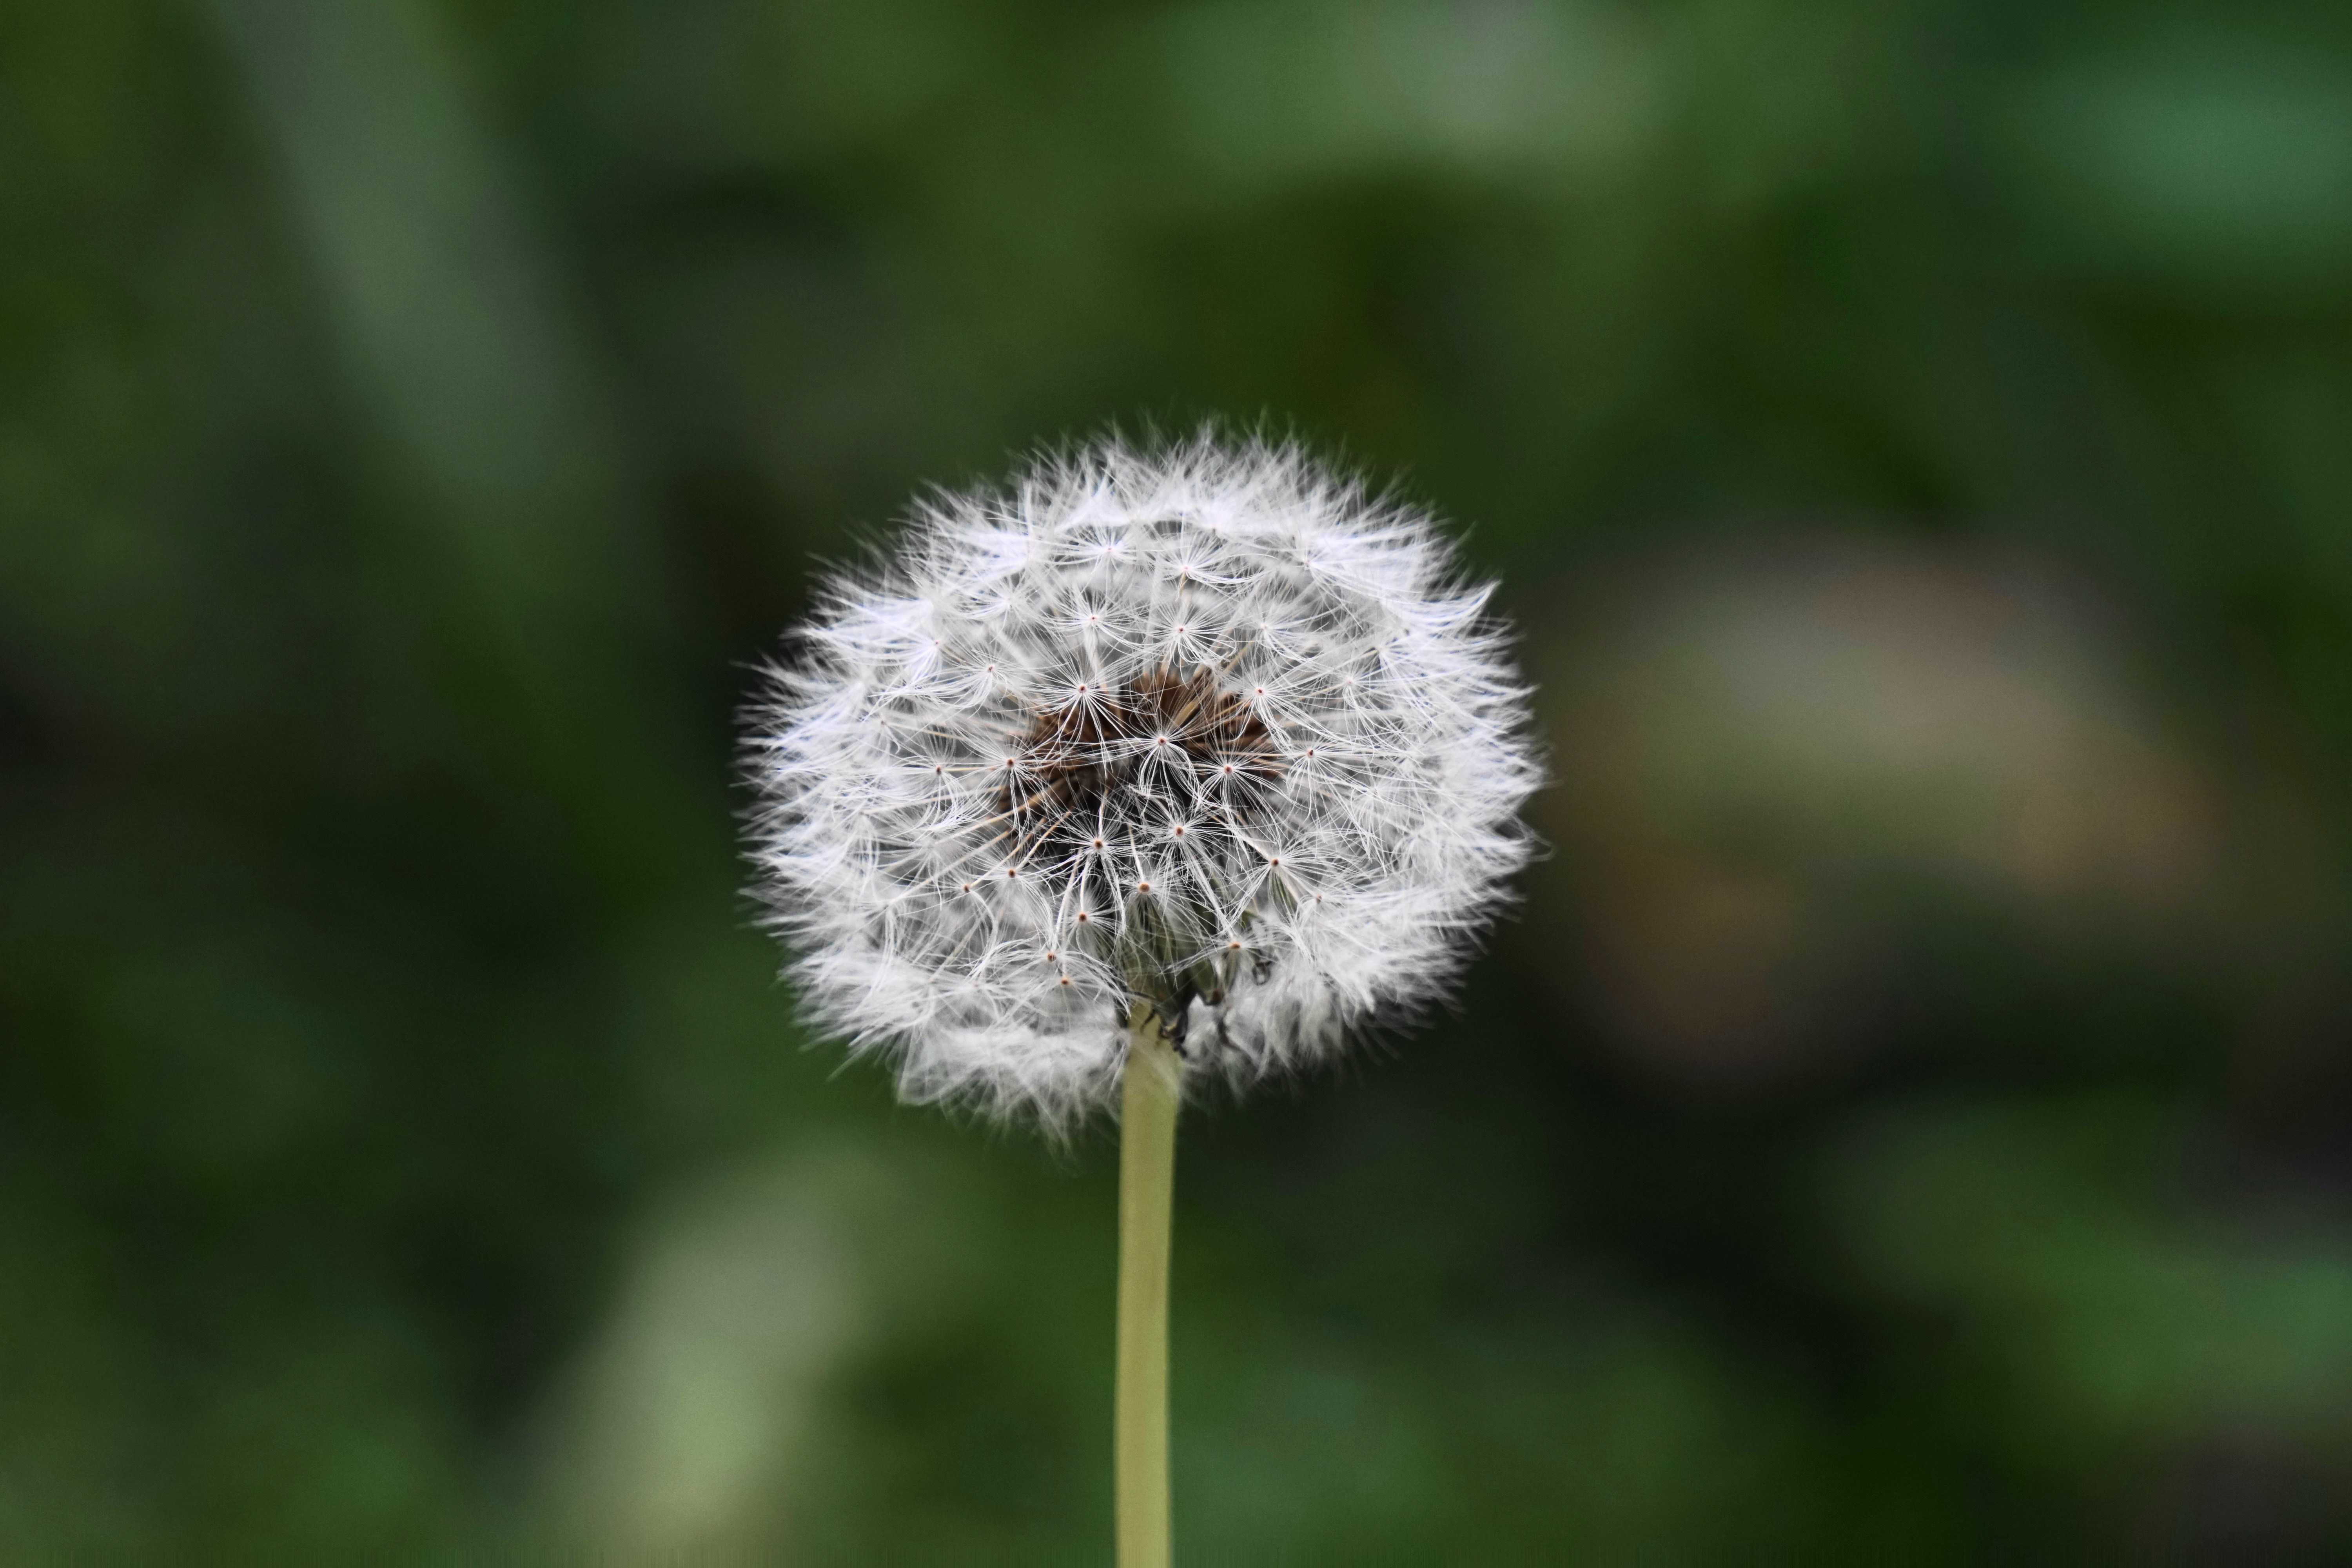 Dandelion weed with fluffy seeds